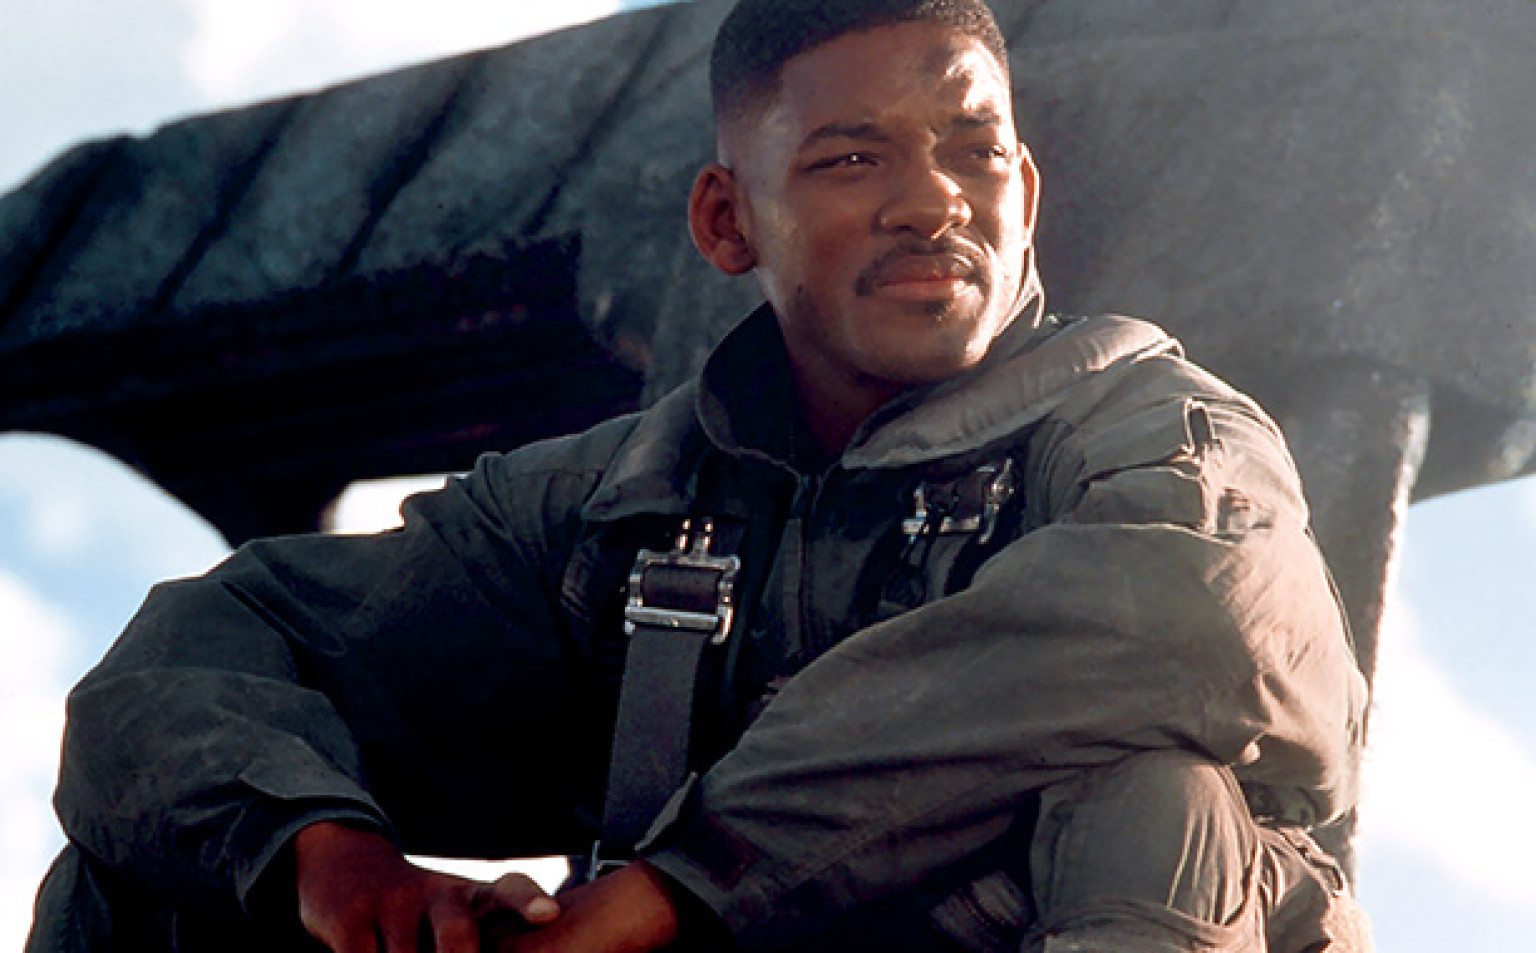 Will Smith: EXCLUSIVE: 'Independence Day 2' Nearly Didn't Happen After